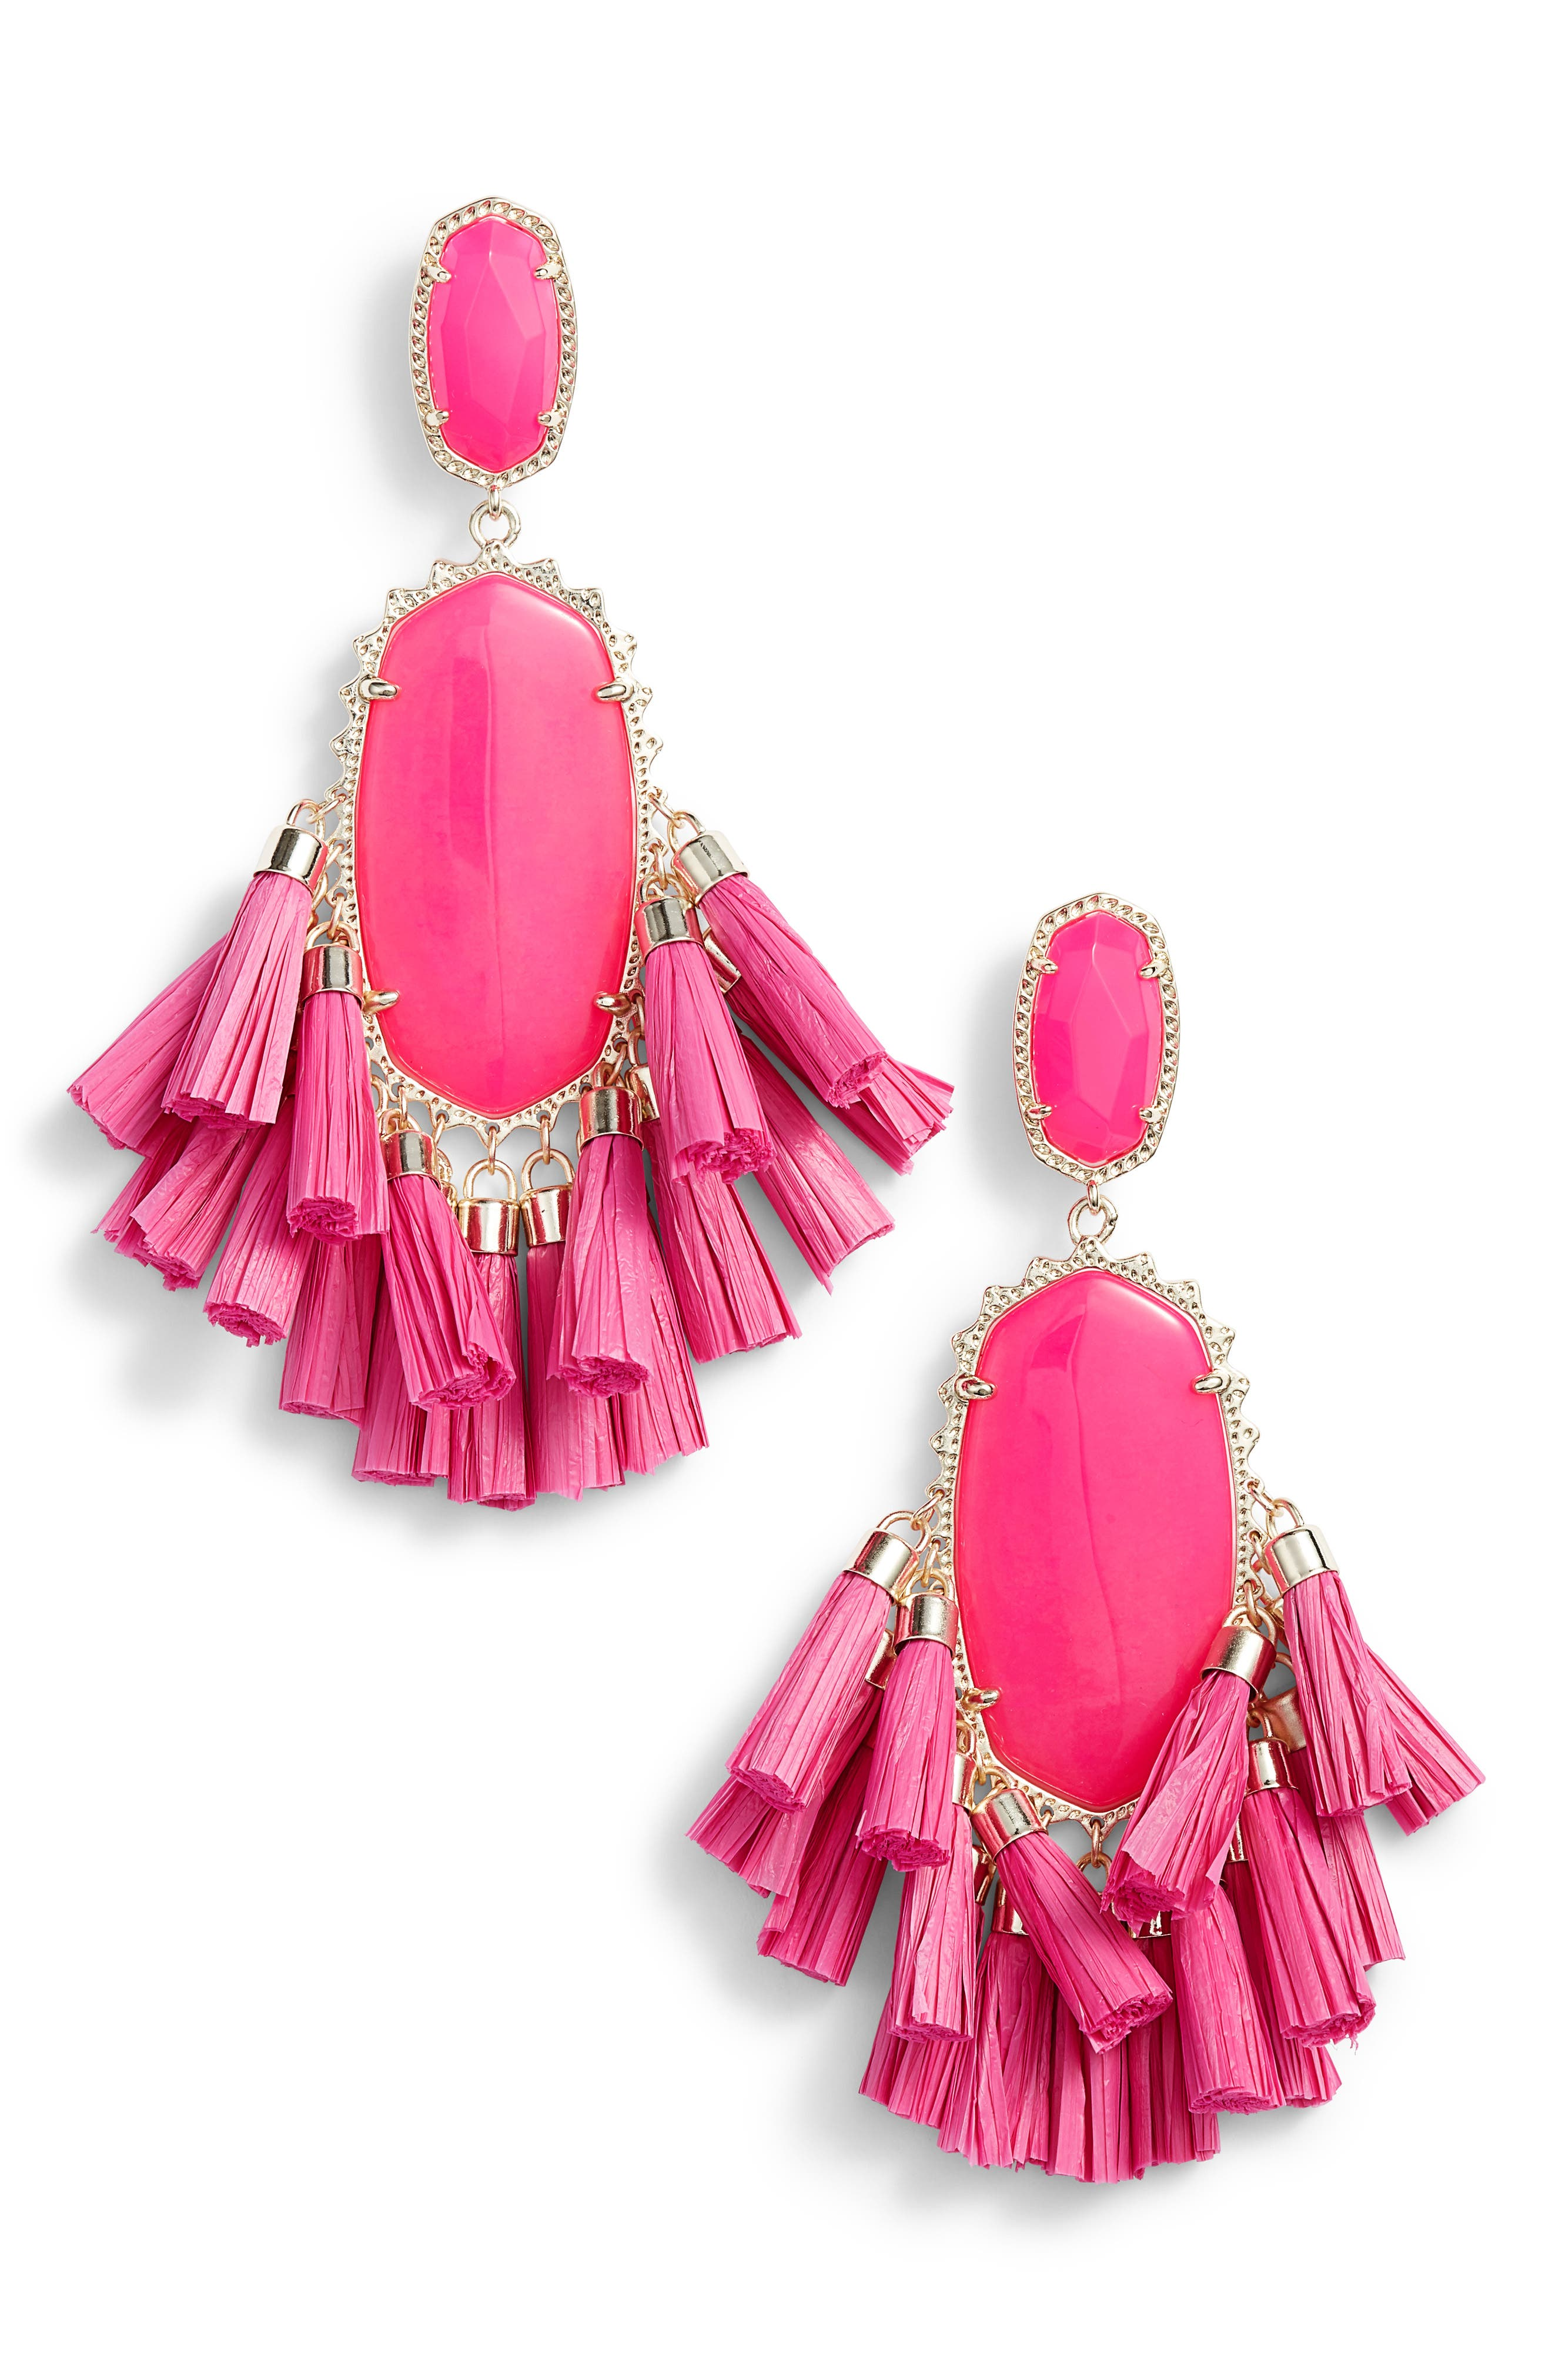 Cristina Stone Tassel Earrings,                             Main thumbnail 1, color,                             Pink Unbanded Agate/ Gold